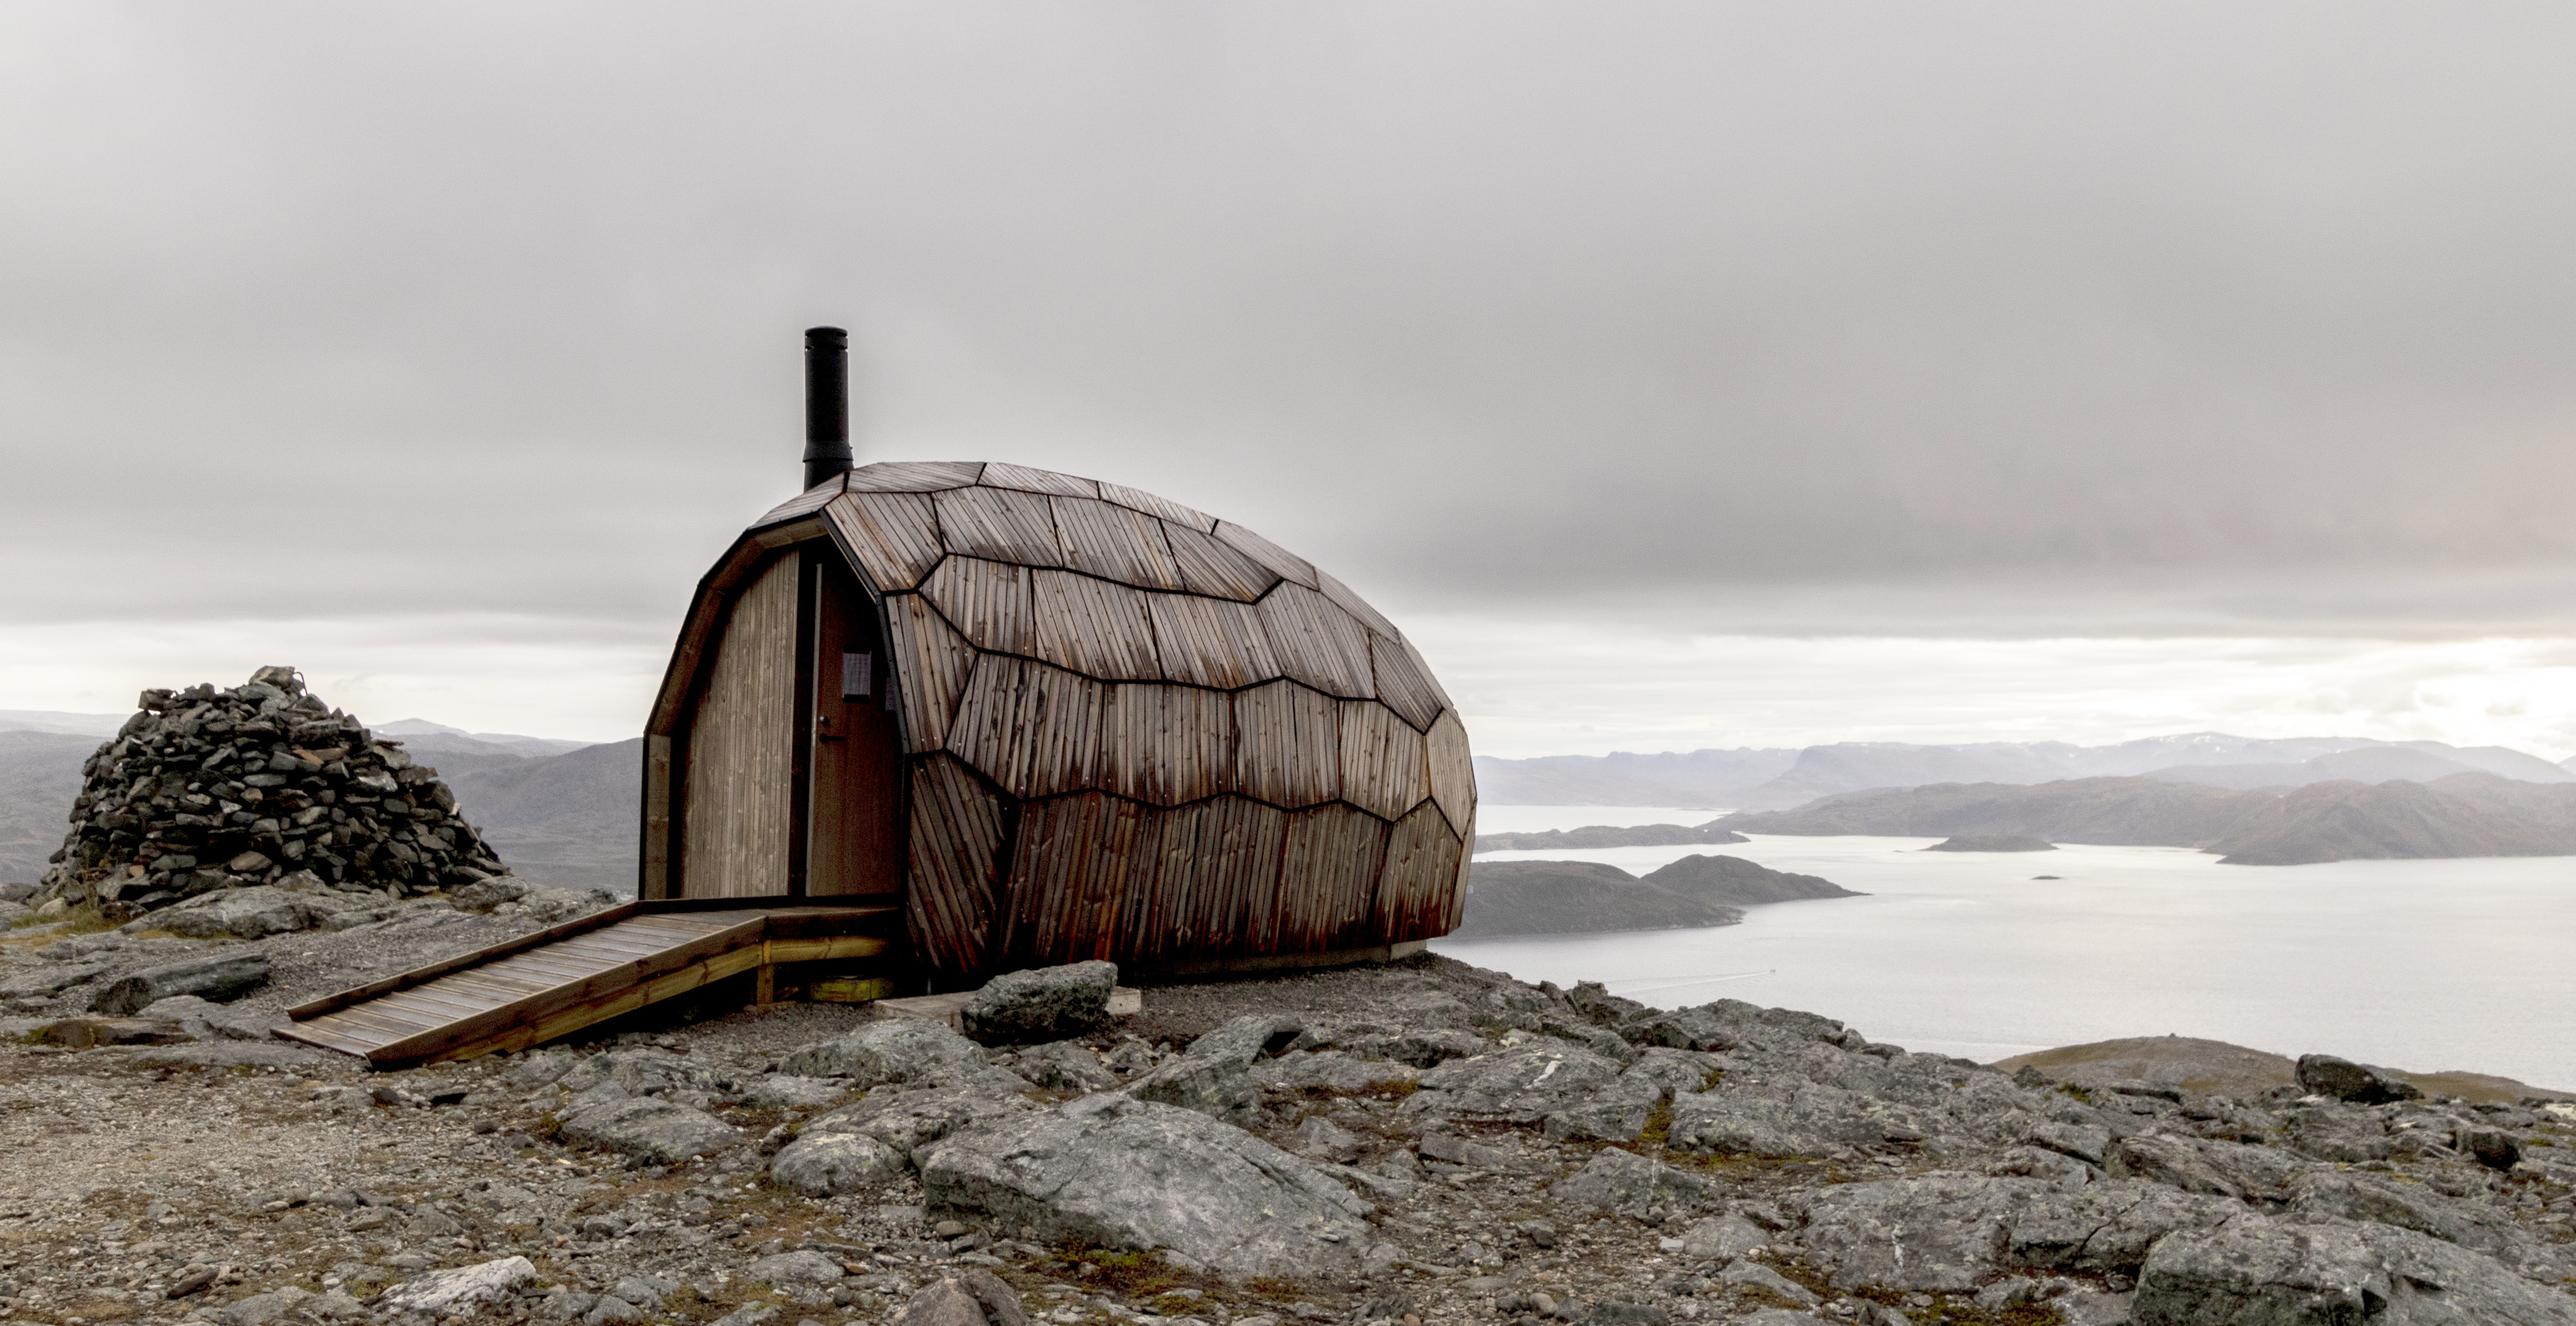 These quirky holiday hideouts in Norway will make you crave some me-time